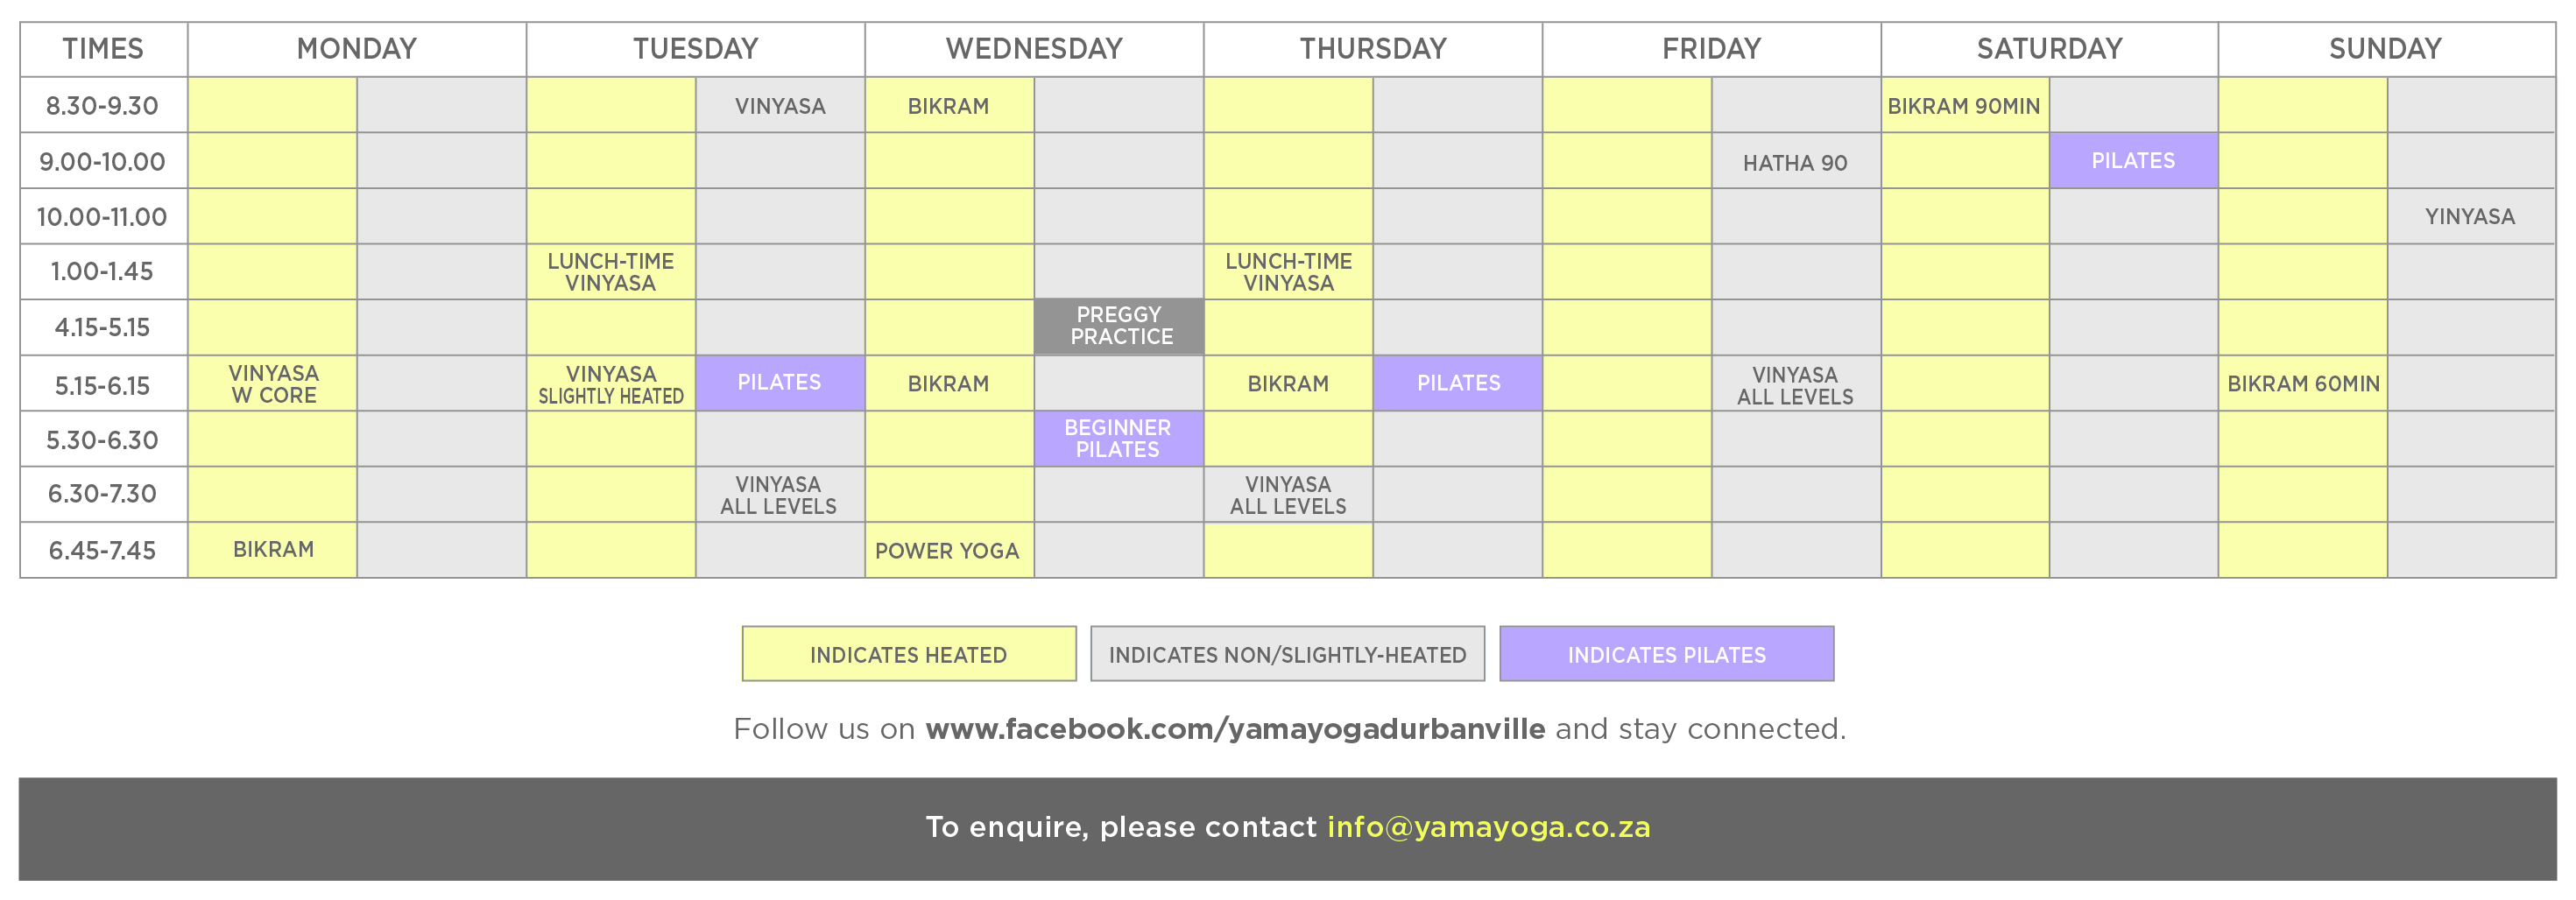 yama-yoga-schedule-march-2019